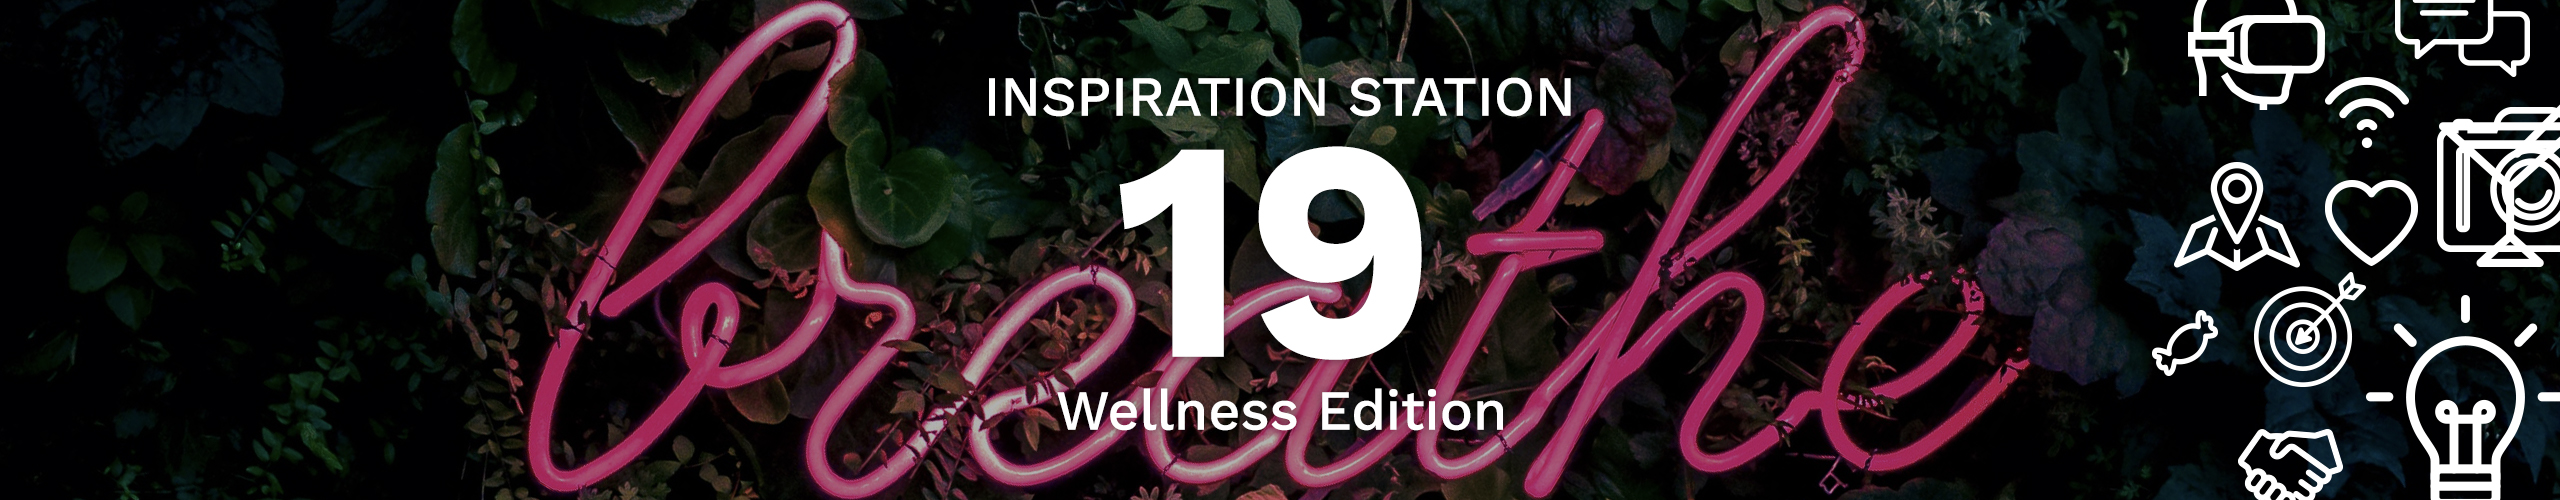 Inspiration Station Vol. 19: Wellness Edition